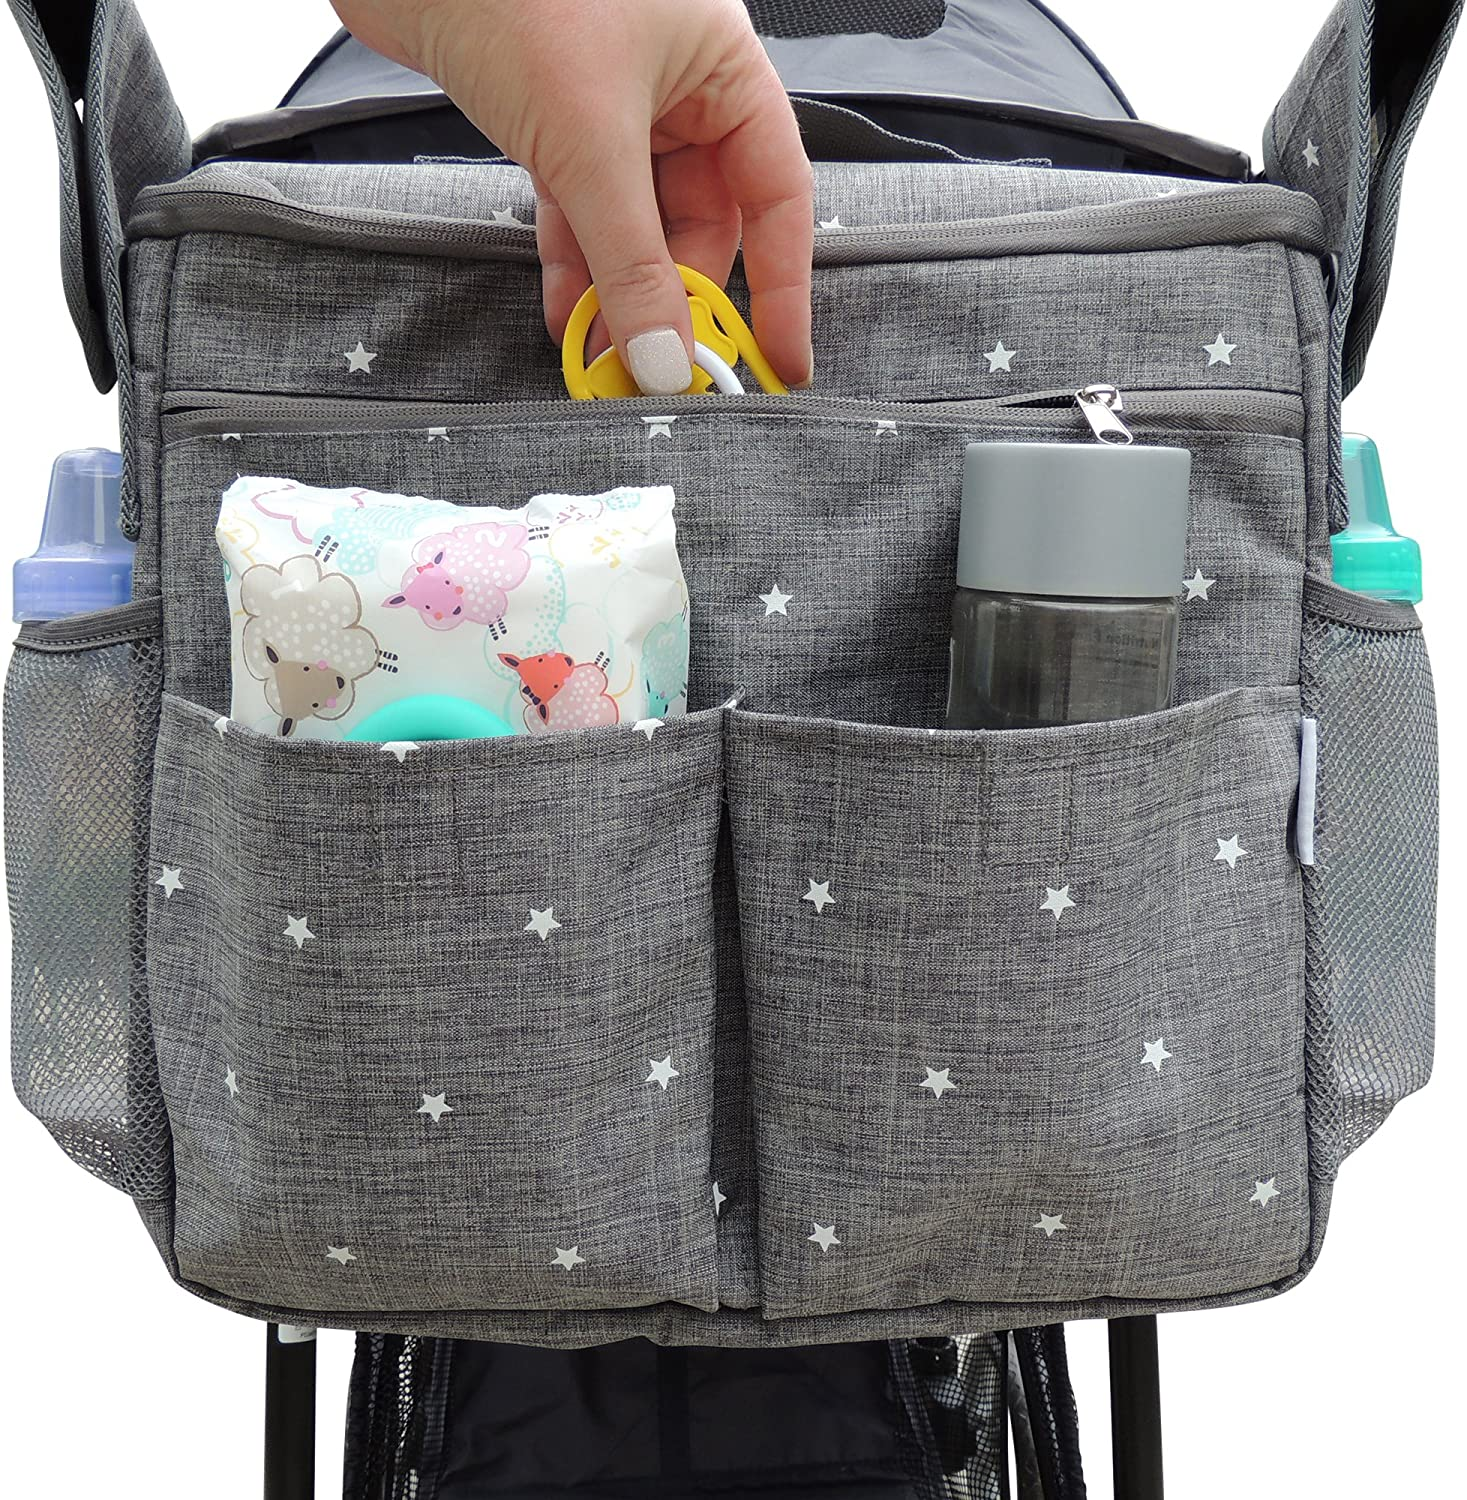 Backpack. Shoulder Babies 3 Ways to Carry Gift for Newborns Large Strollers Insulated Baby Bag Messenger Bag Toddlers Universal Parents Diaper Organizer Bag with Stroller Attachments Infants